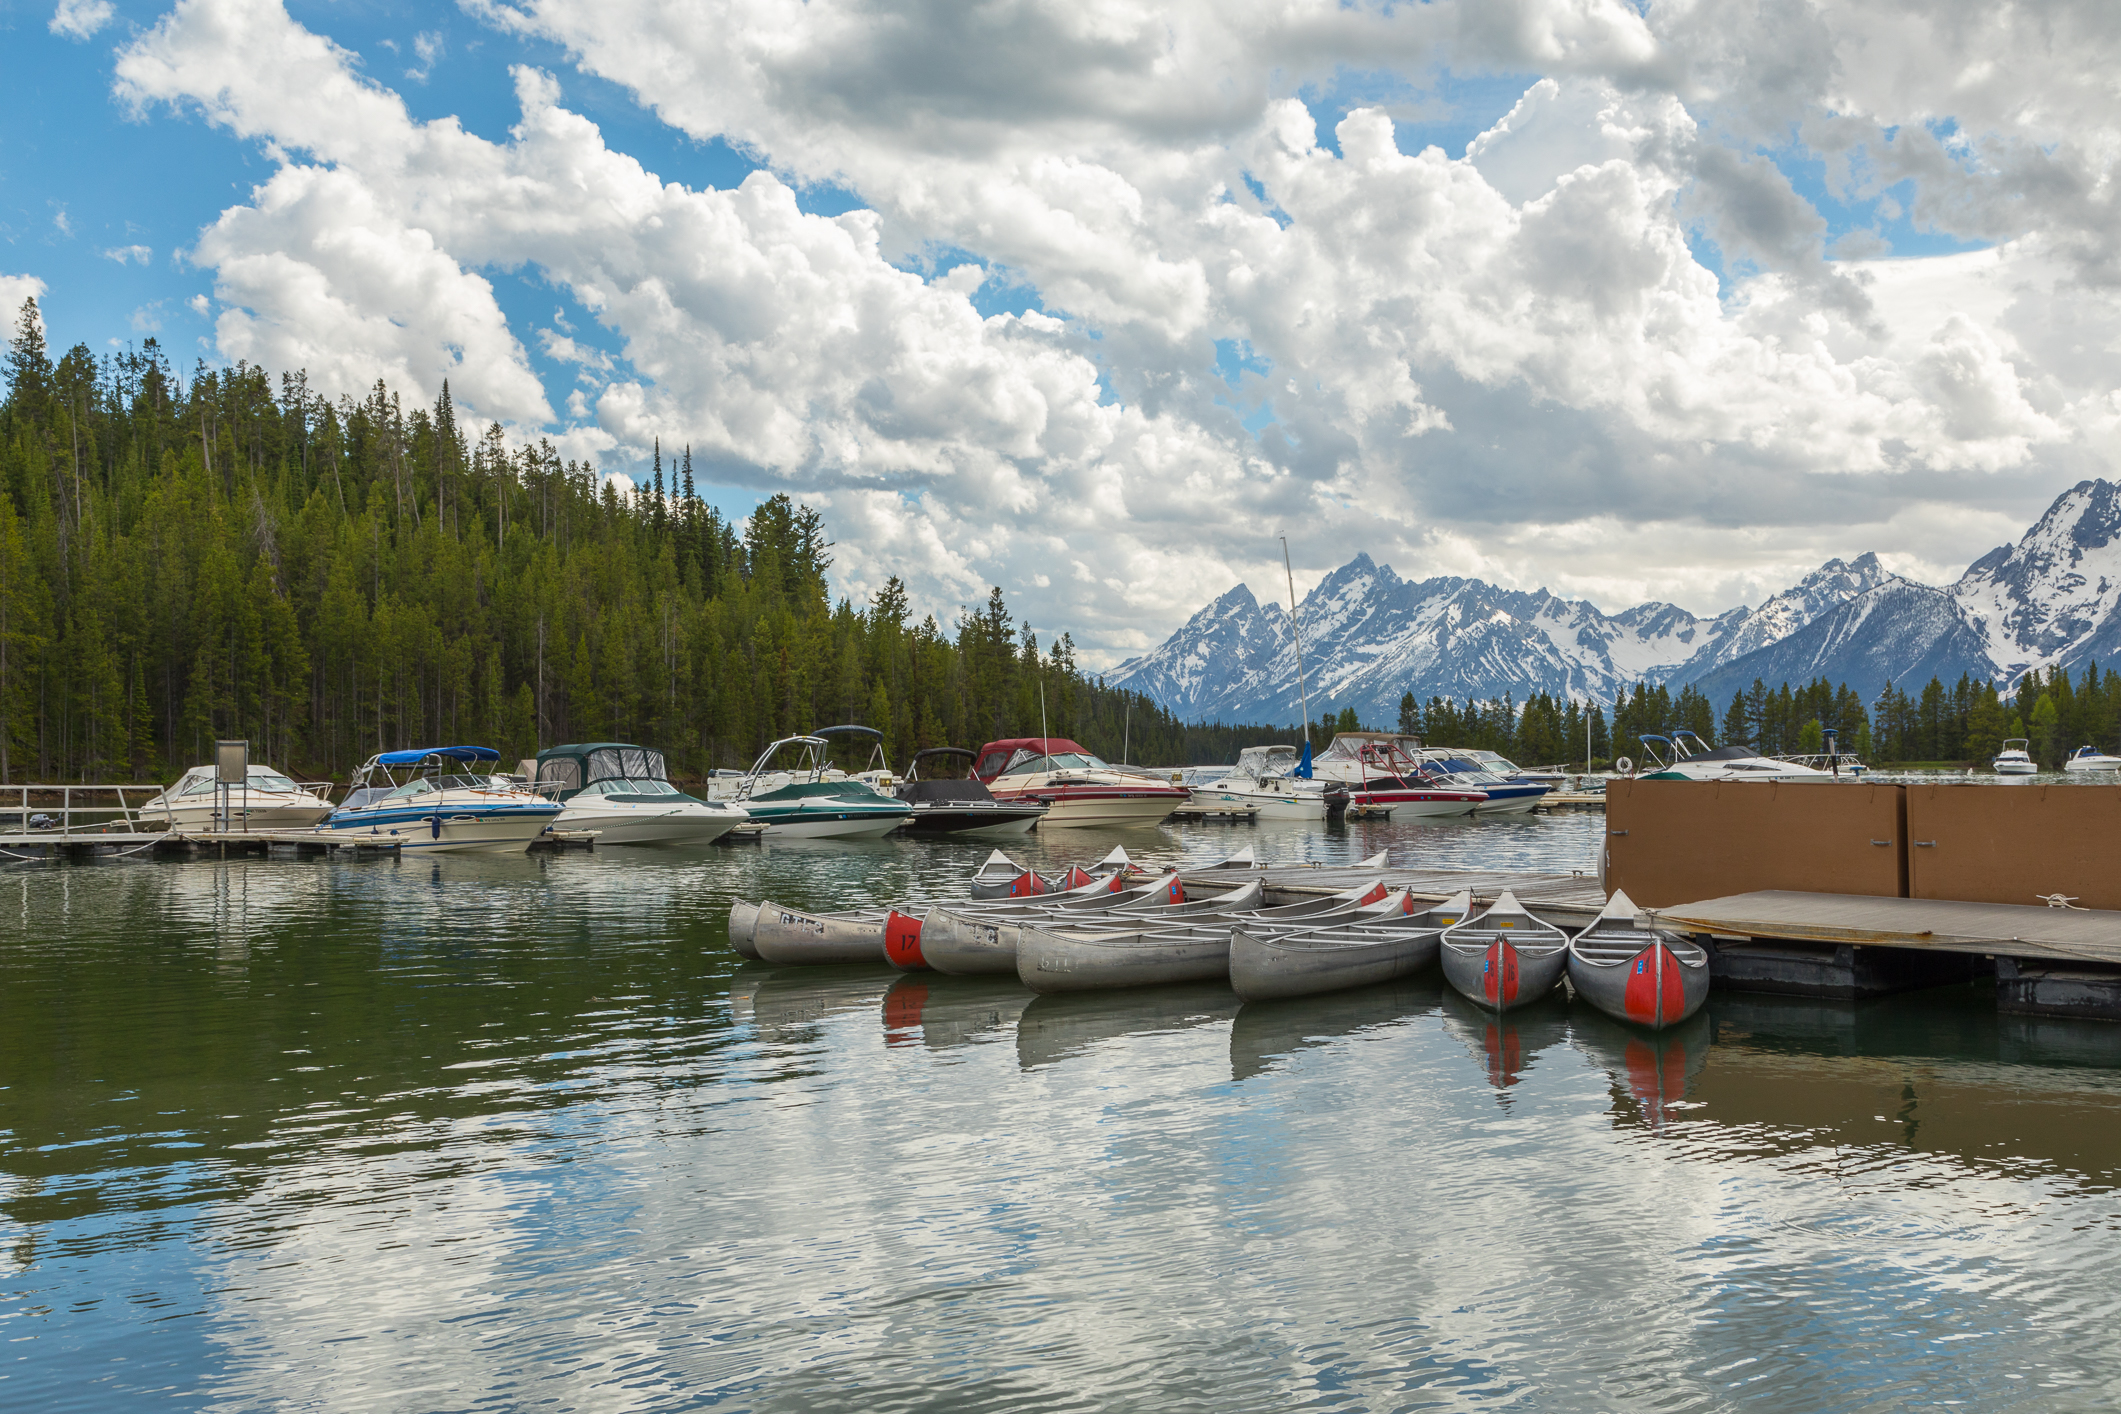 Colter Bay, Image # 3390